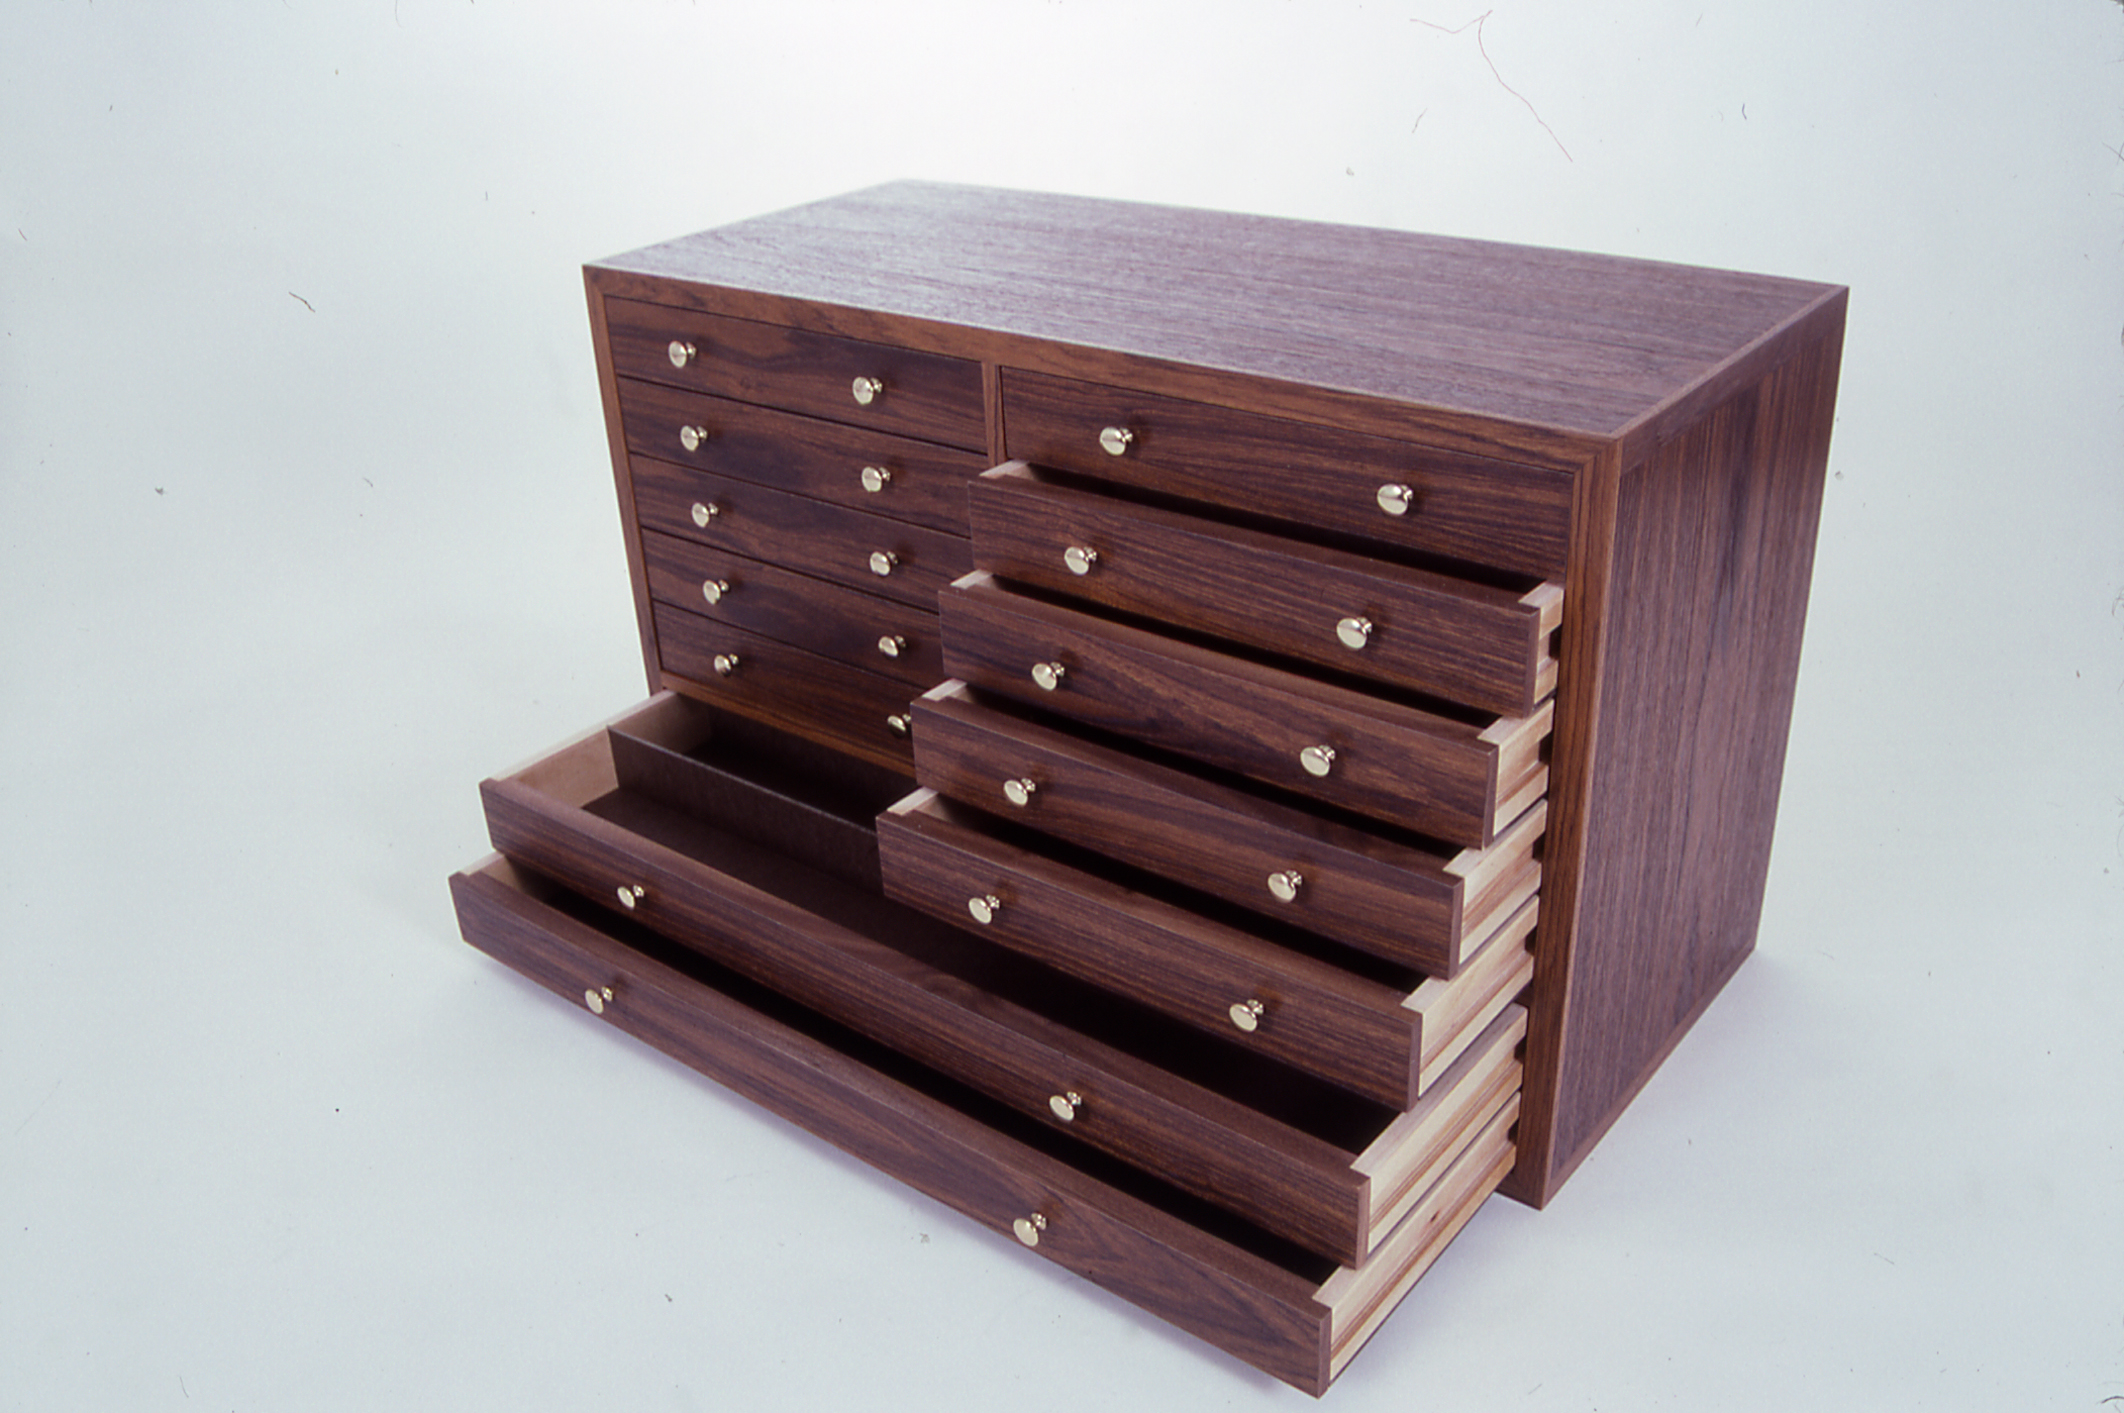 teak-tool-chest-with-open-drawers